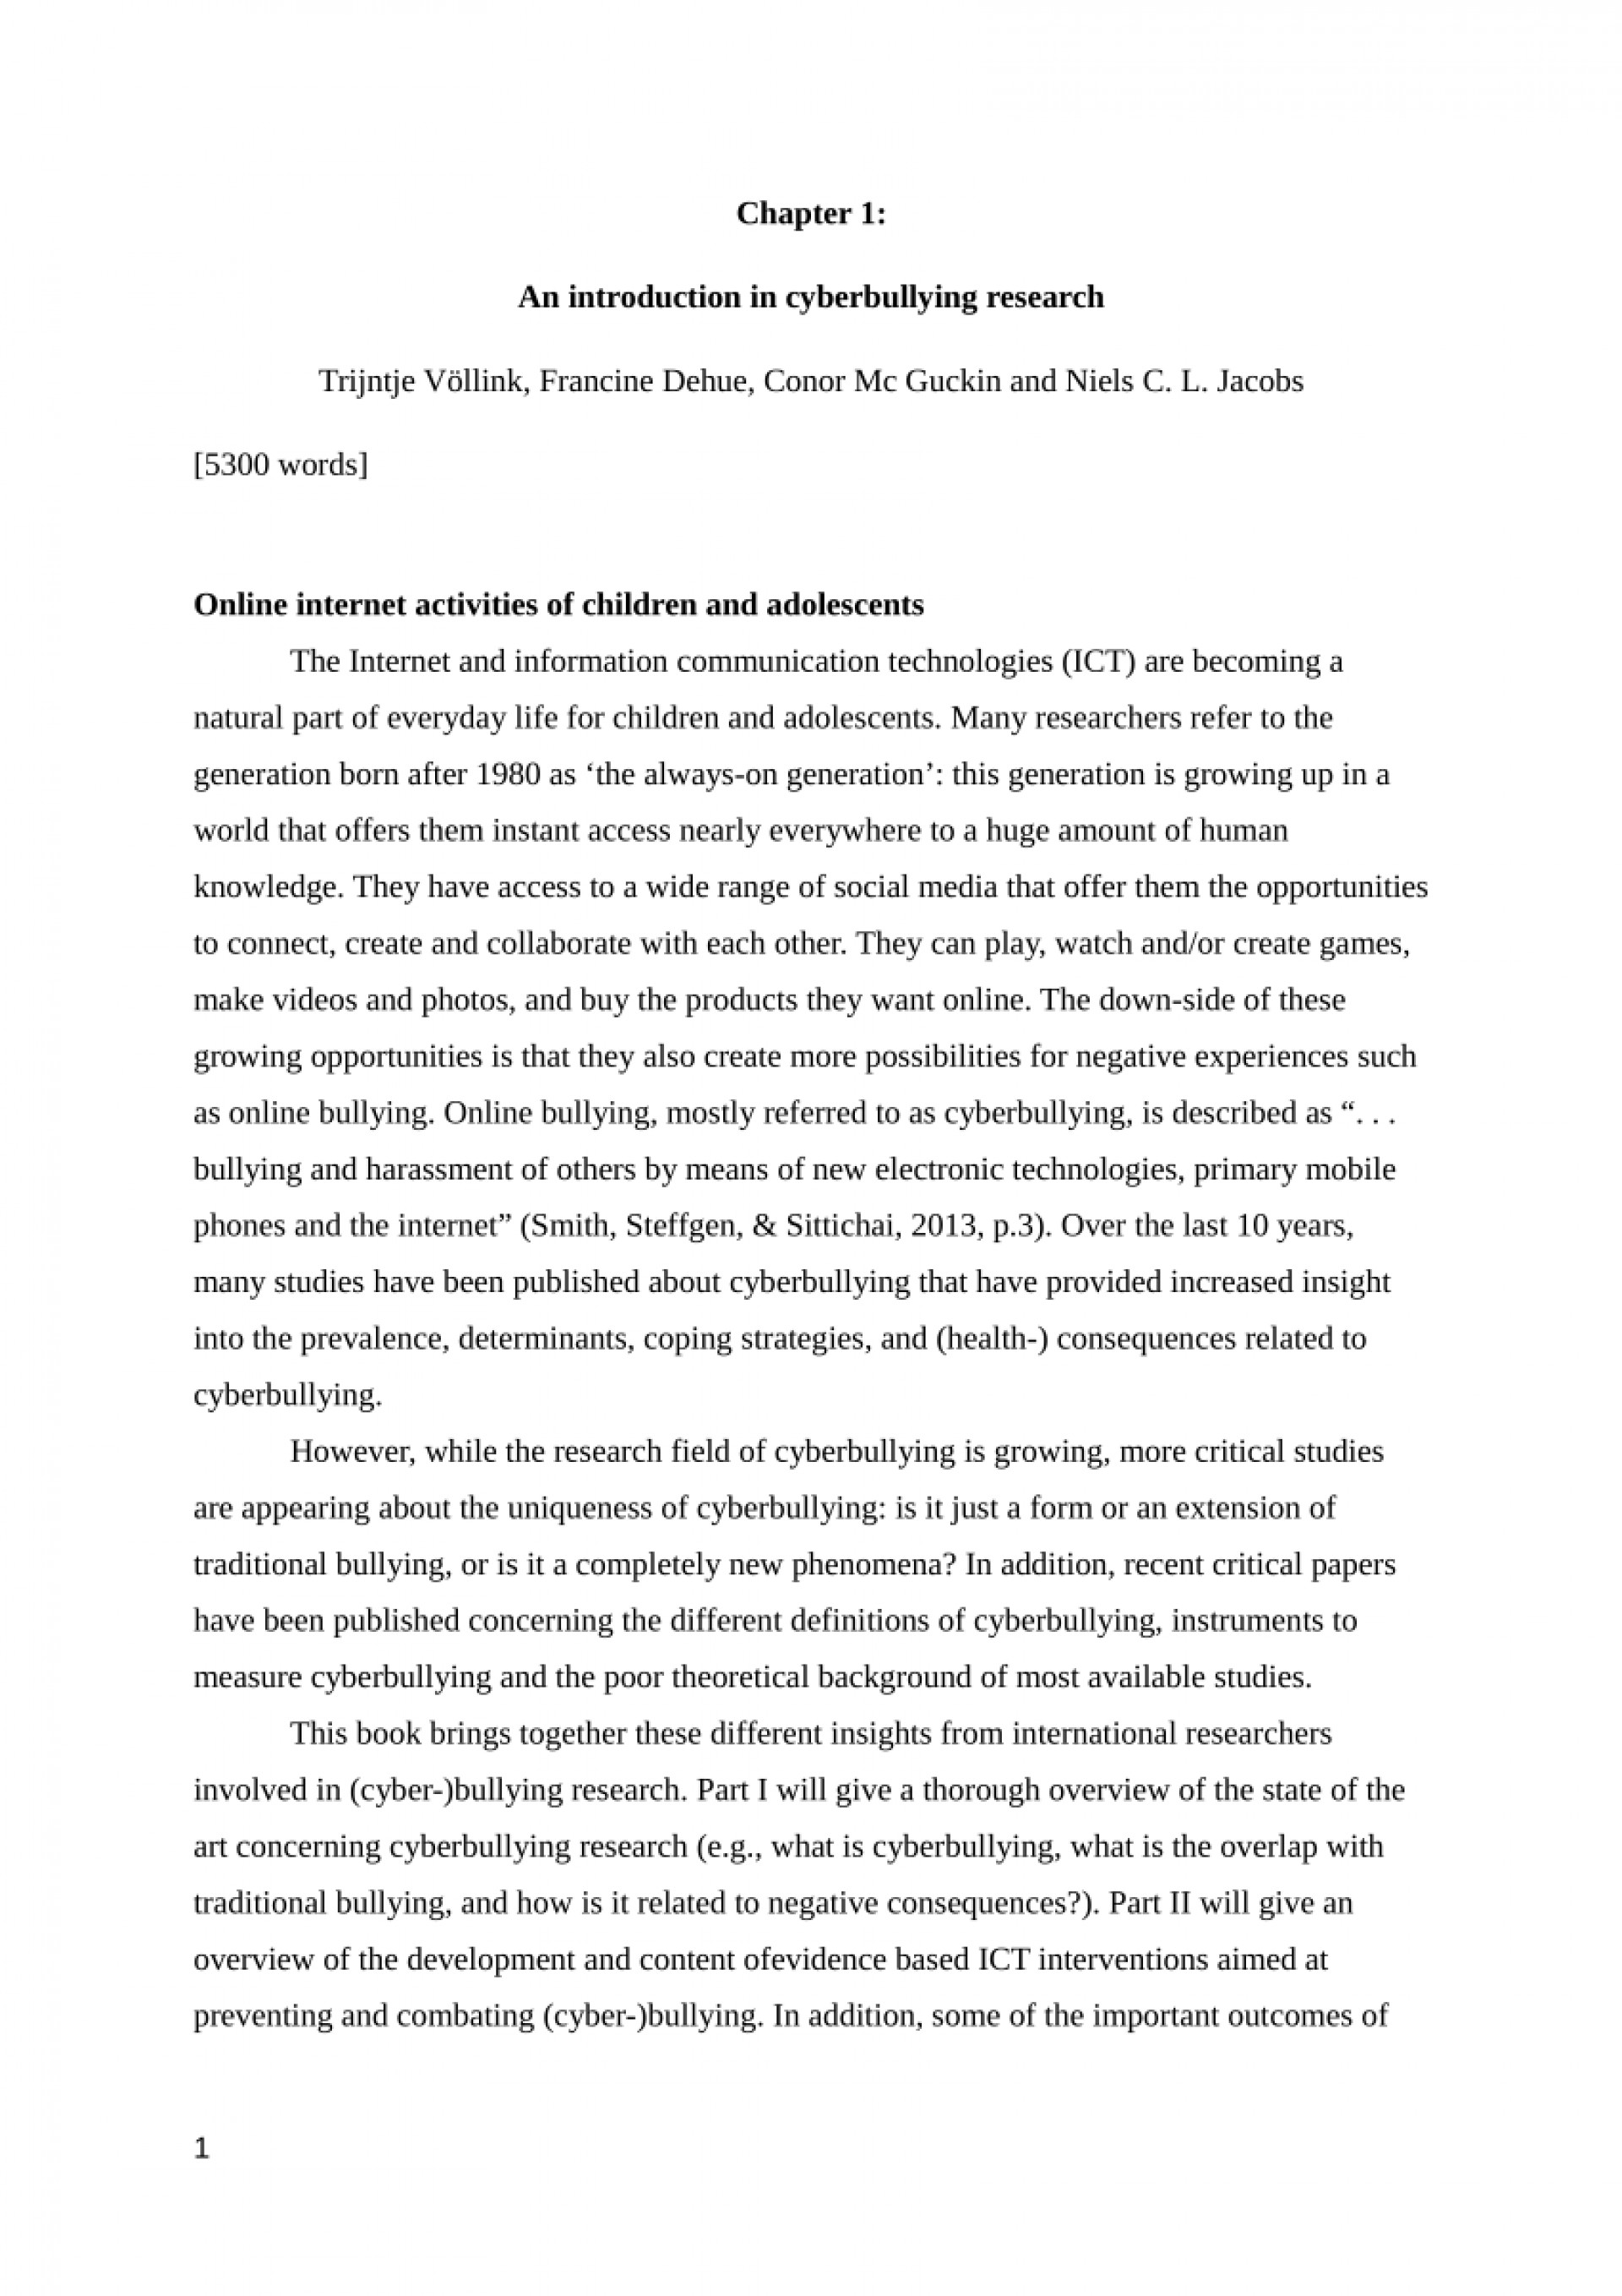 001 Research Paper Cyberbullying Introduction Magnificent Cyber Bullying Paragraph Background Of The Study About 1920